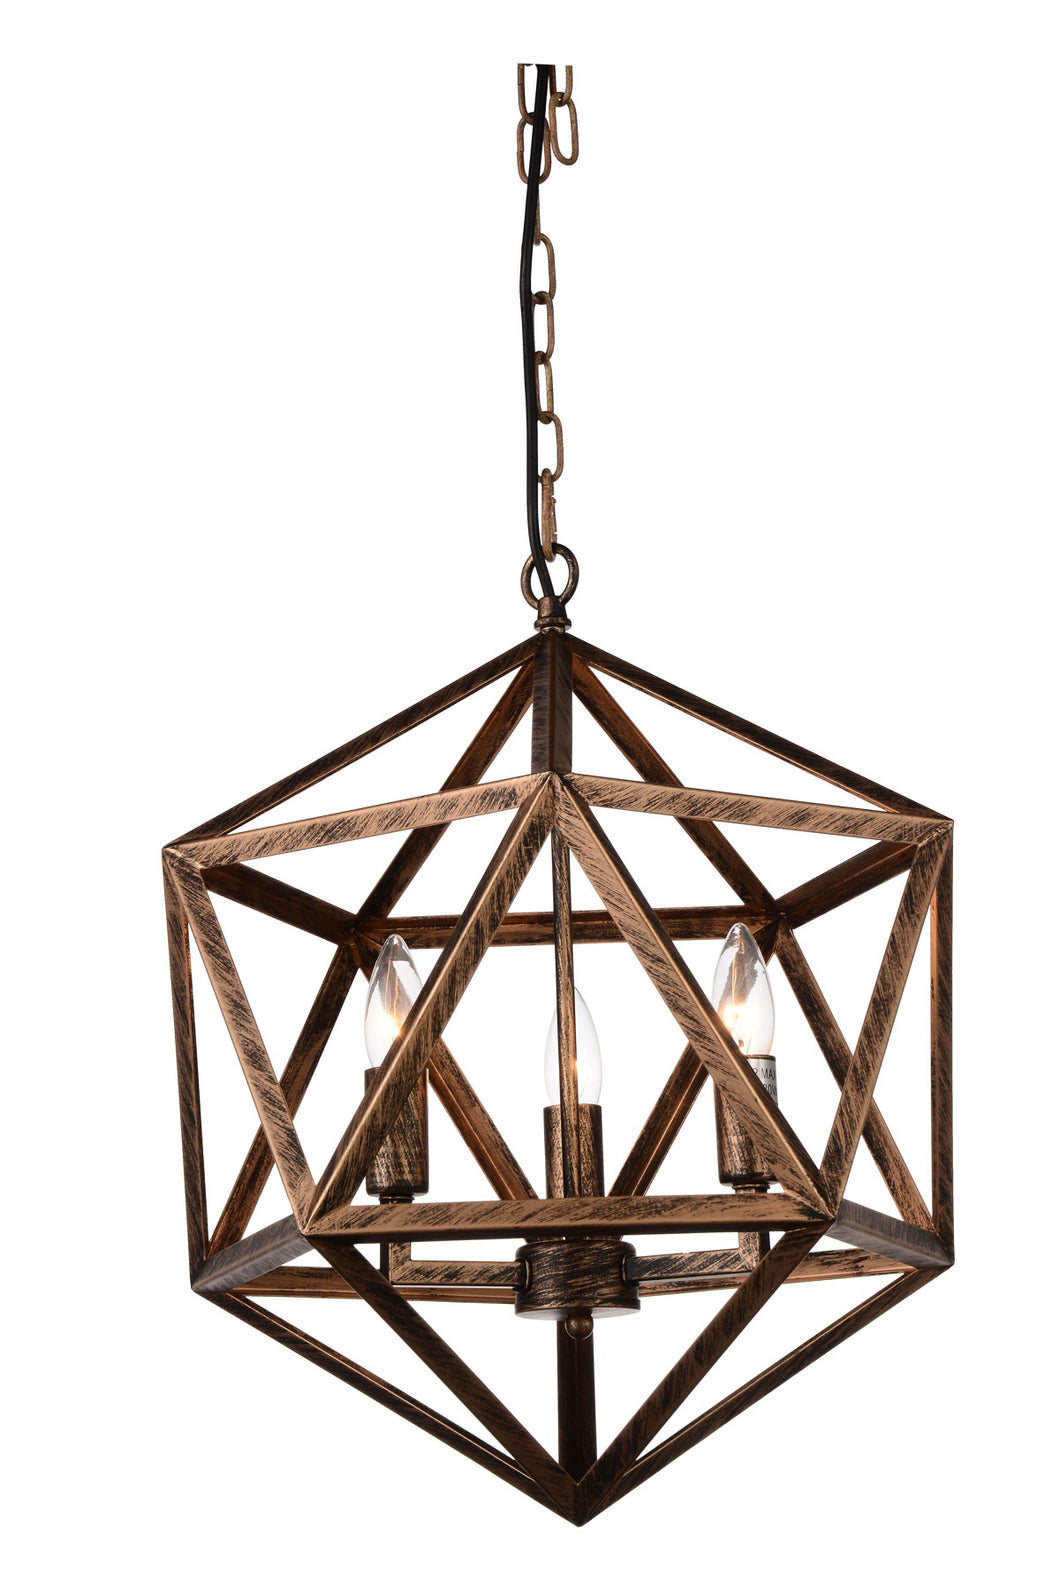 4 Light Up Pendant with Antique forged copper finish